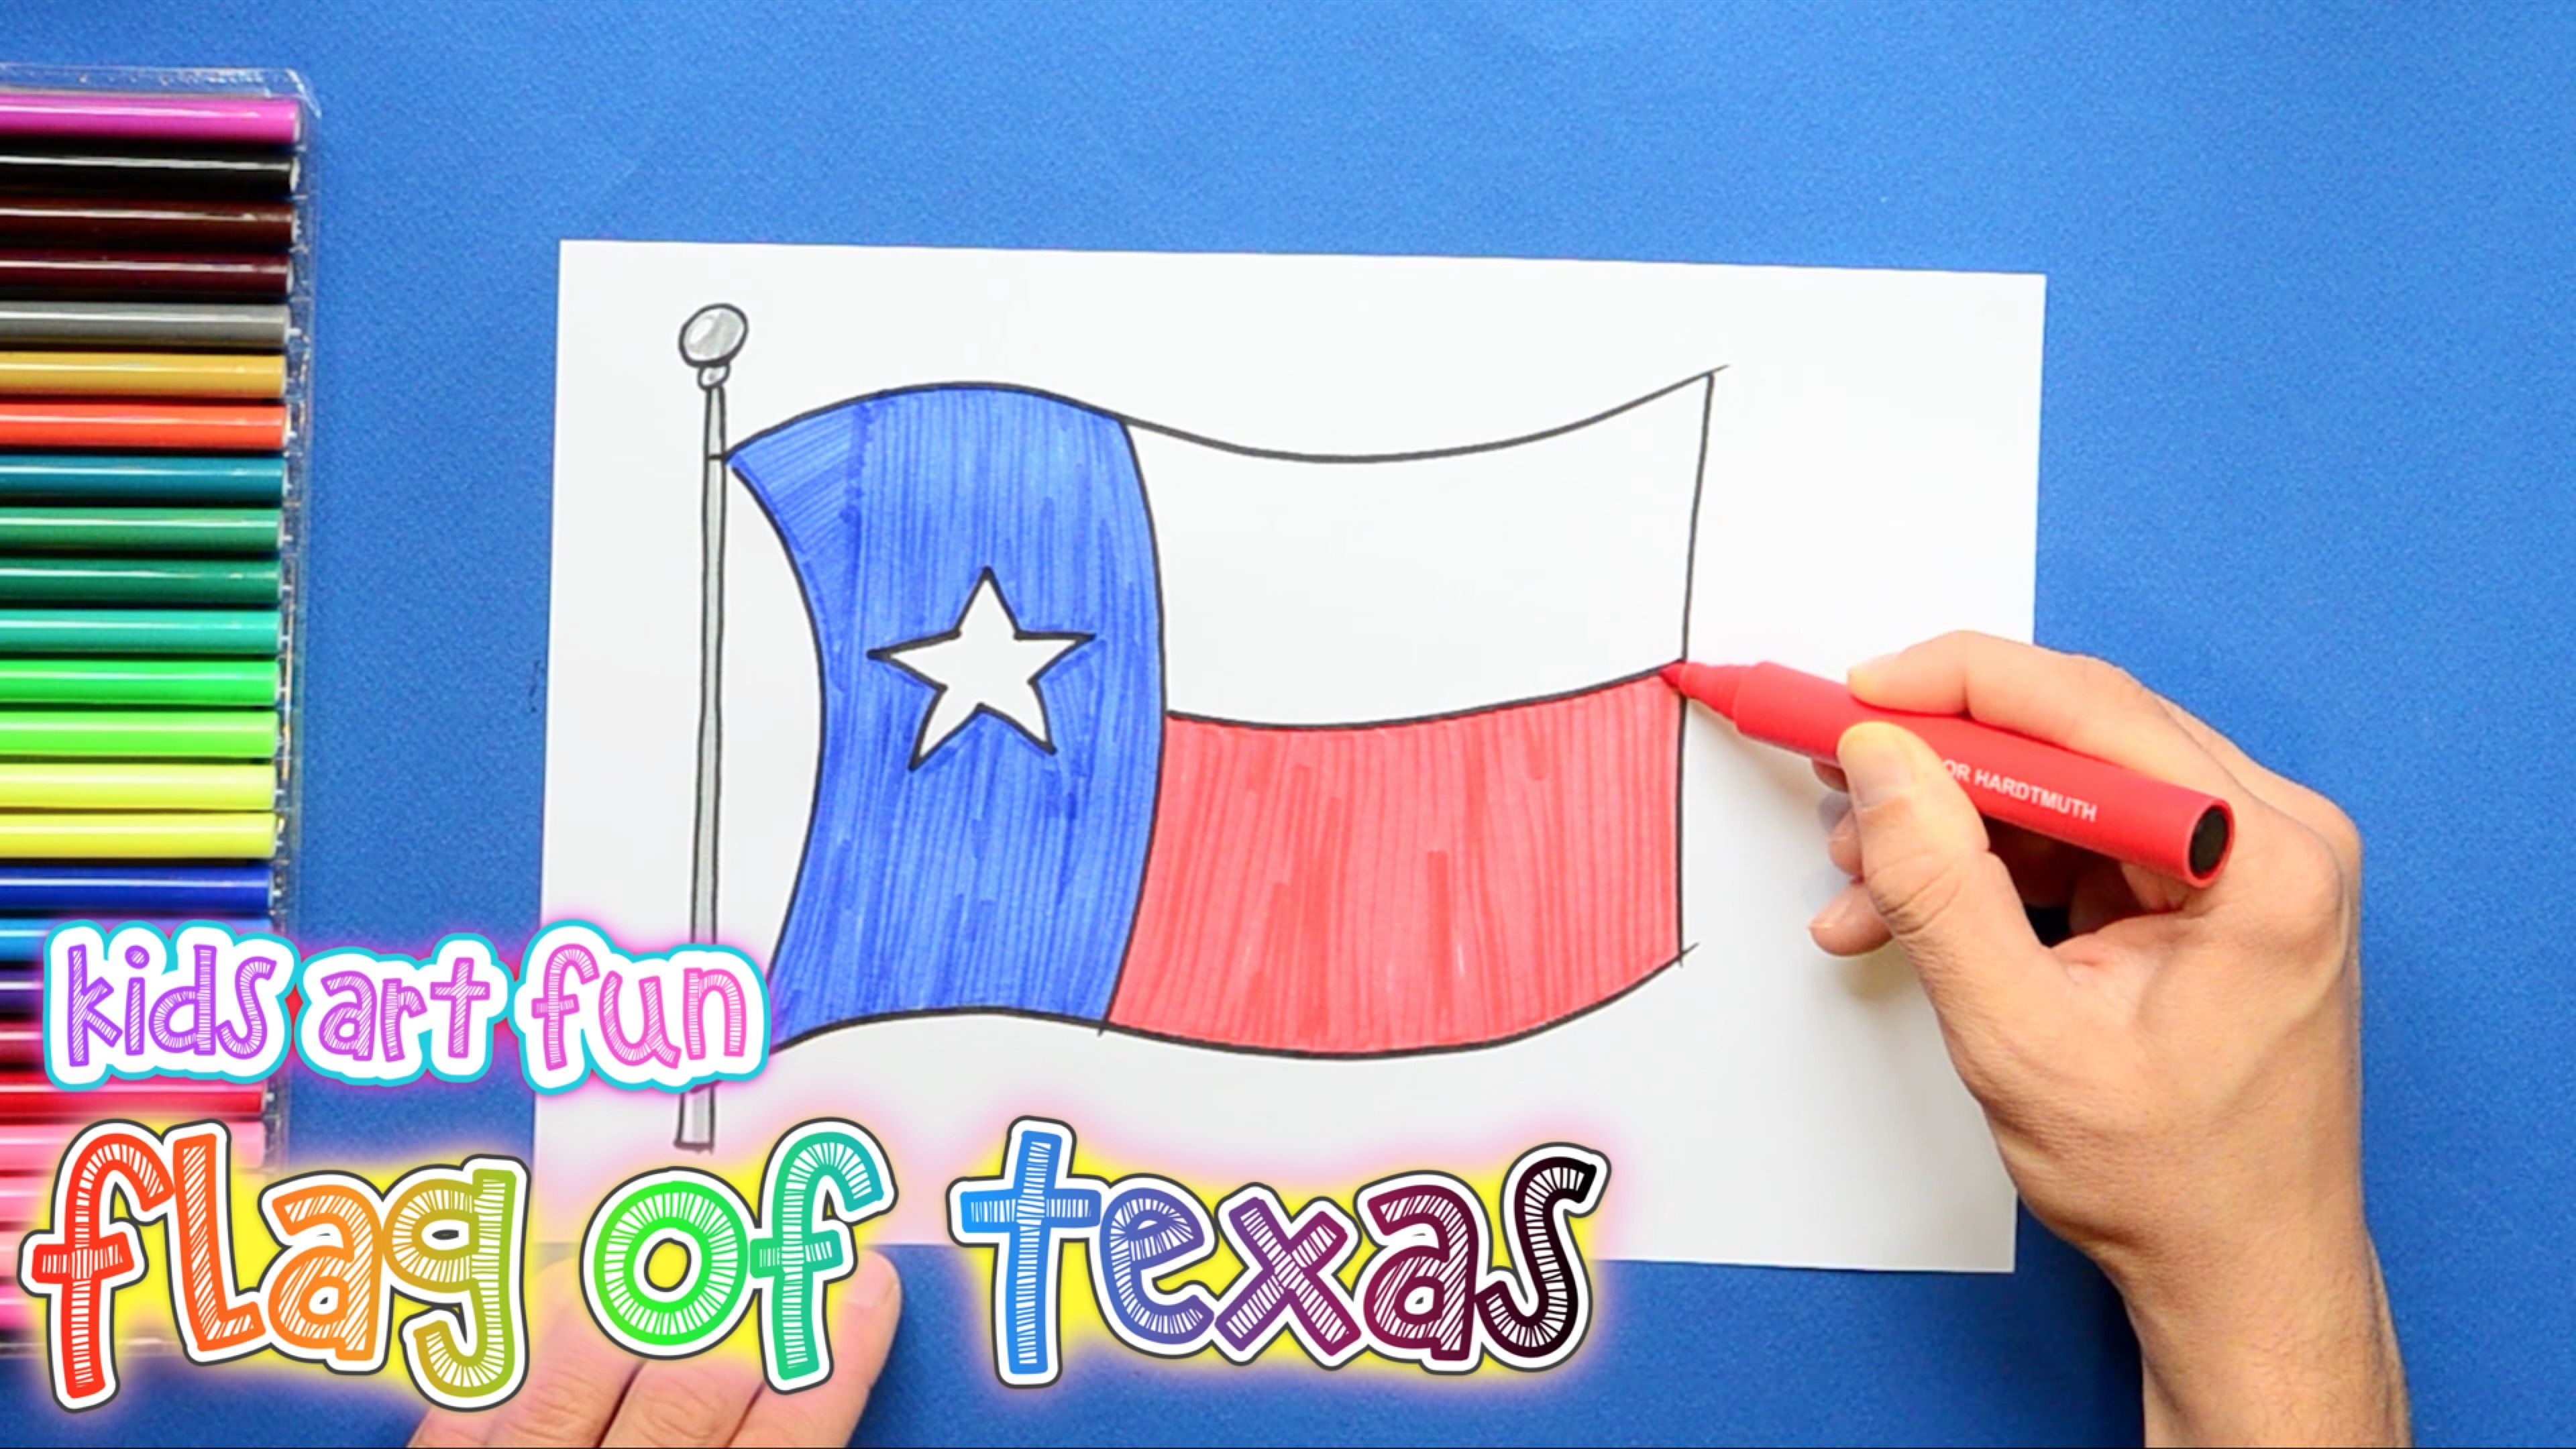 How To Draw And Color The State Flag Of Texas Flag Drawing Flag Drawings